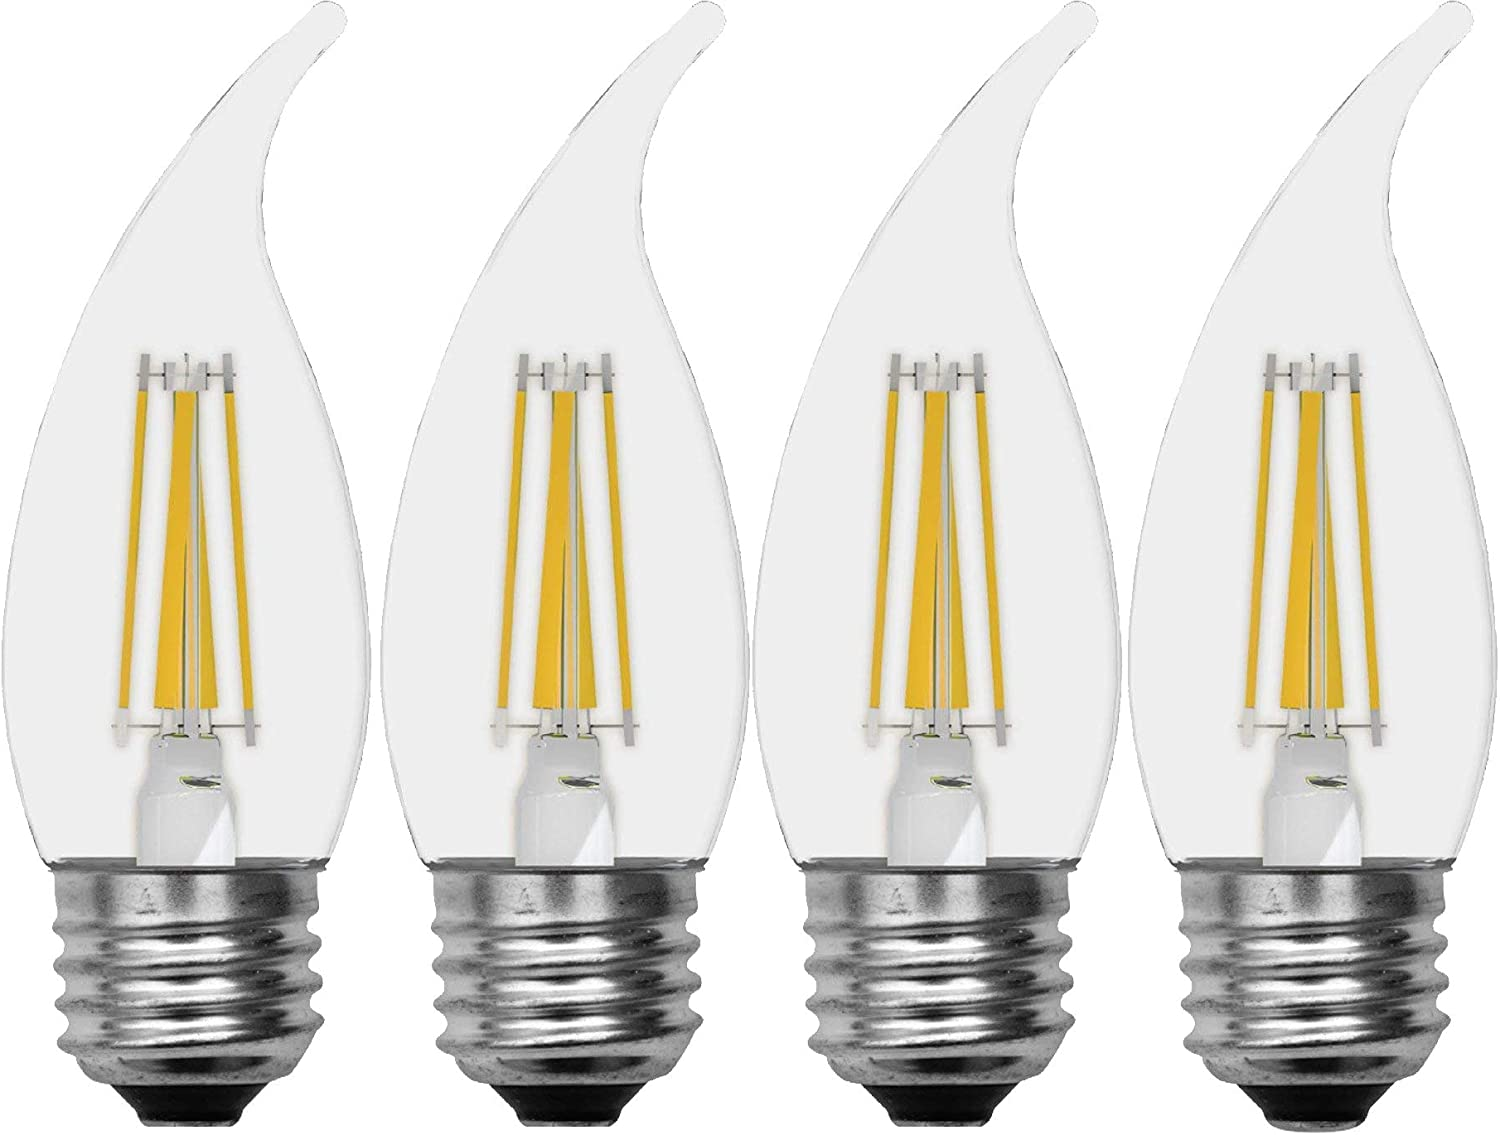 GE Lighting 43255 Relax HD LED (60-Watt Replacement), 500-Lumen Candle Bulb, Medium Base, Soft White Clear, 4-Pack, Title 20 Compliant